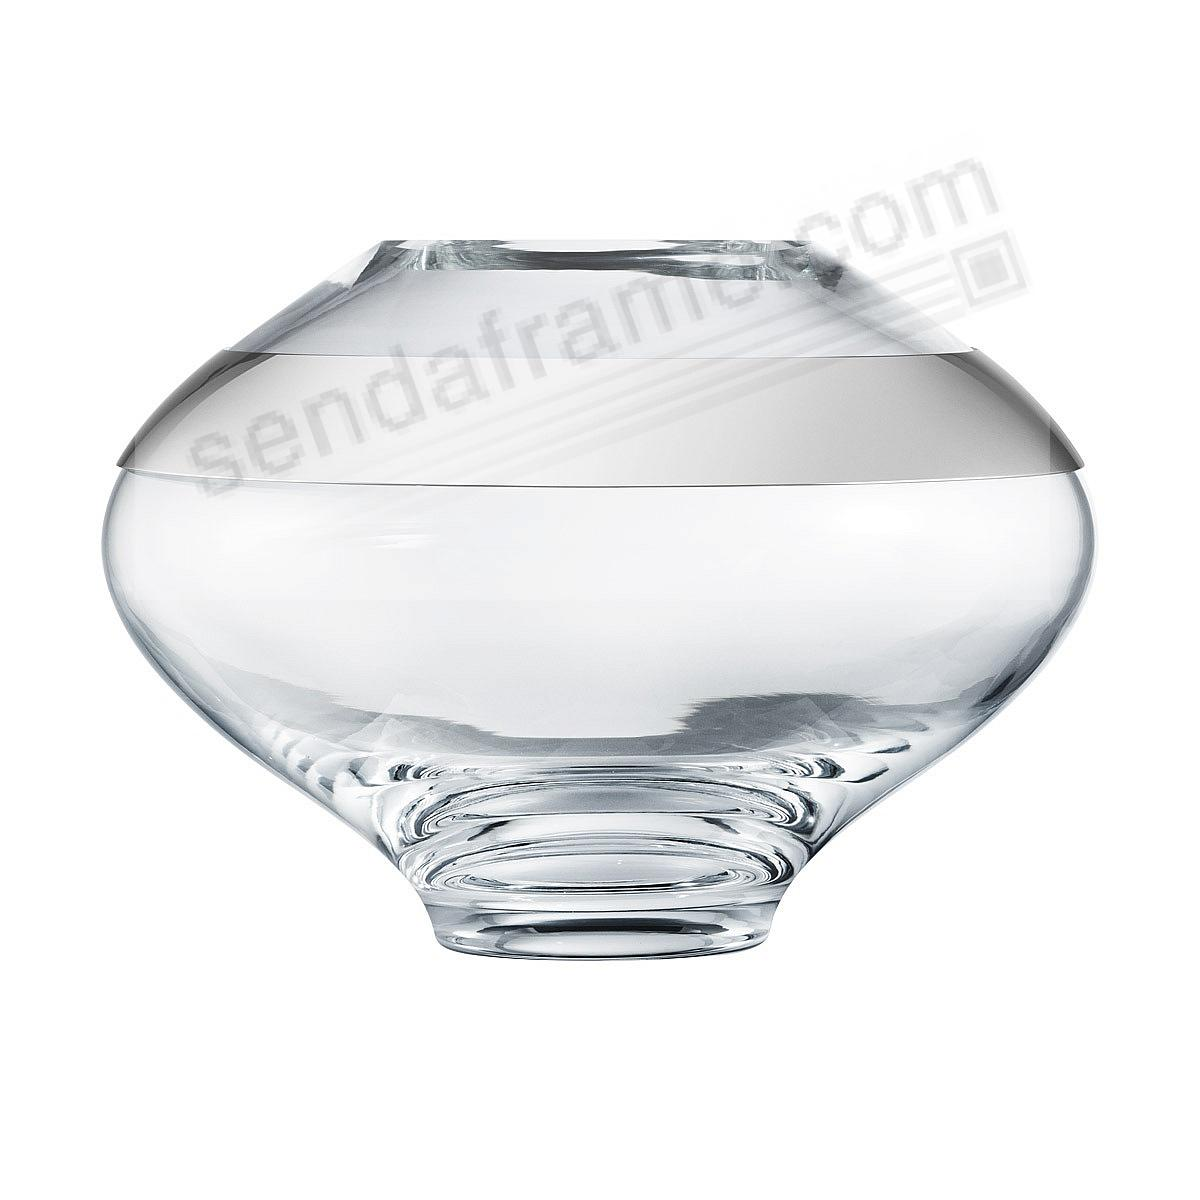 The DUO ROUND VASE (Medium | 9.8in) Glass+Stainless Steel by Georg Jensen®